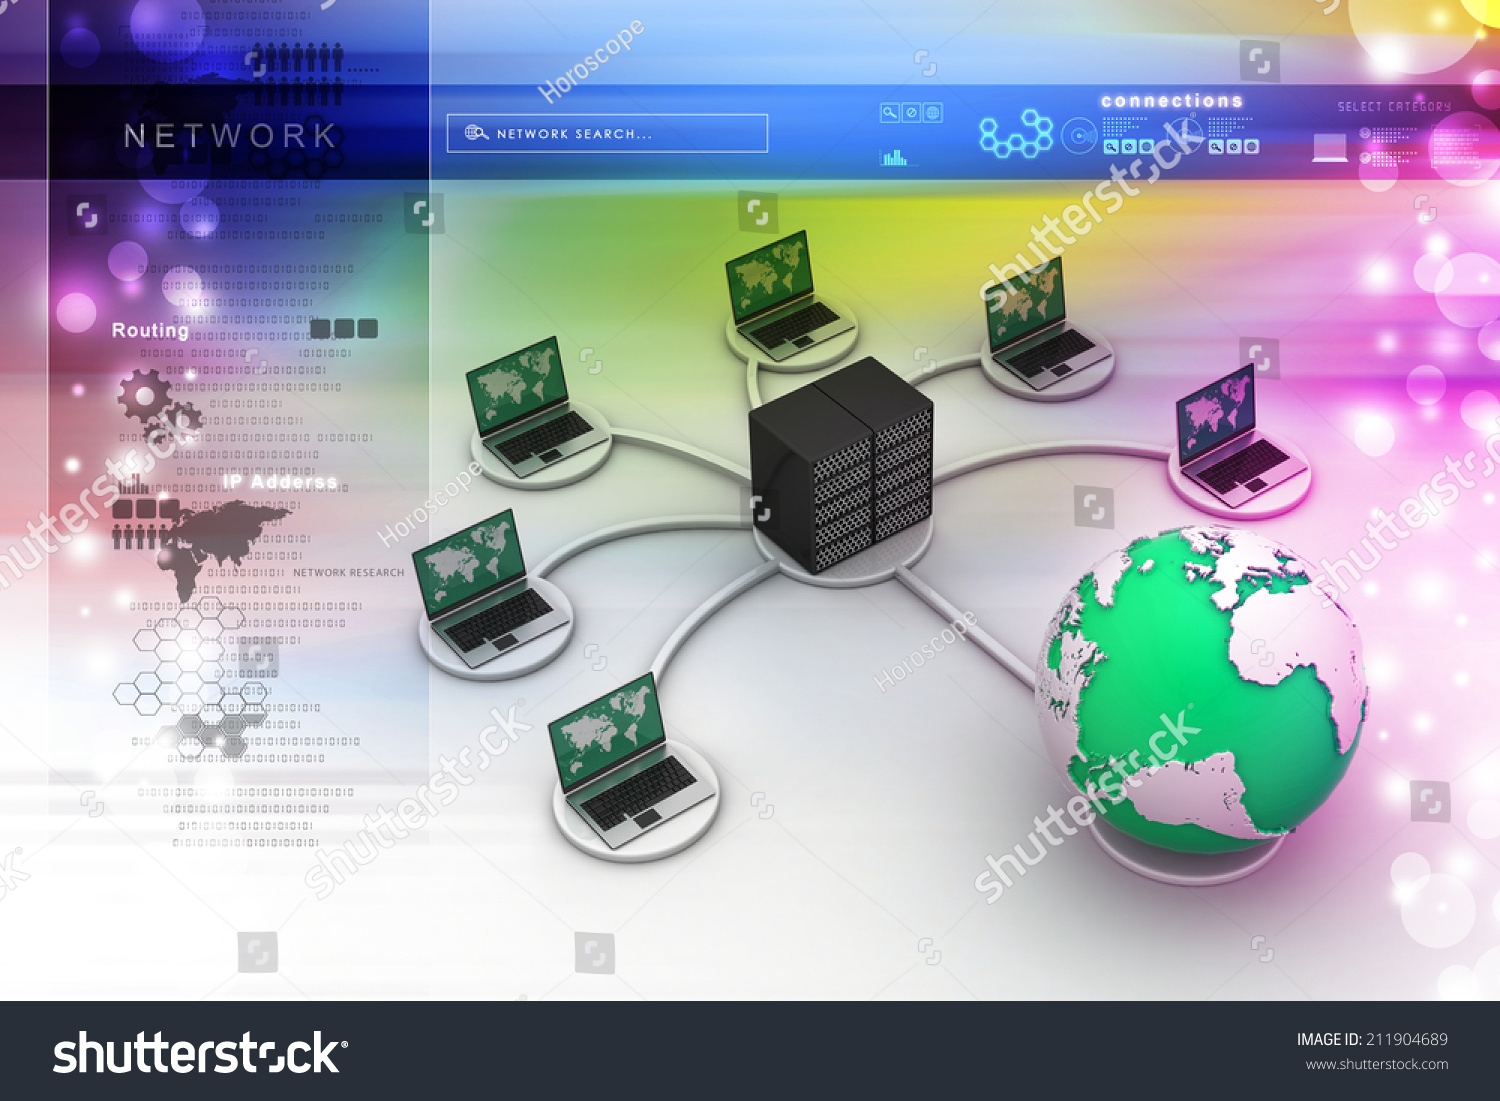 Royalty Free Stock Illustration Of Laptop Big Server Net Work Also Live Band Stage Setup Diagram Together With Firewall Illustrations Editorial Footage Music 3d Image